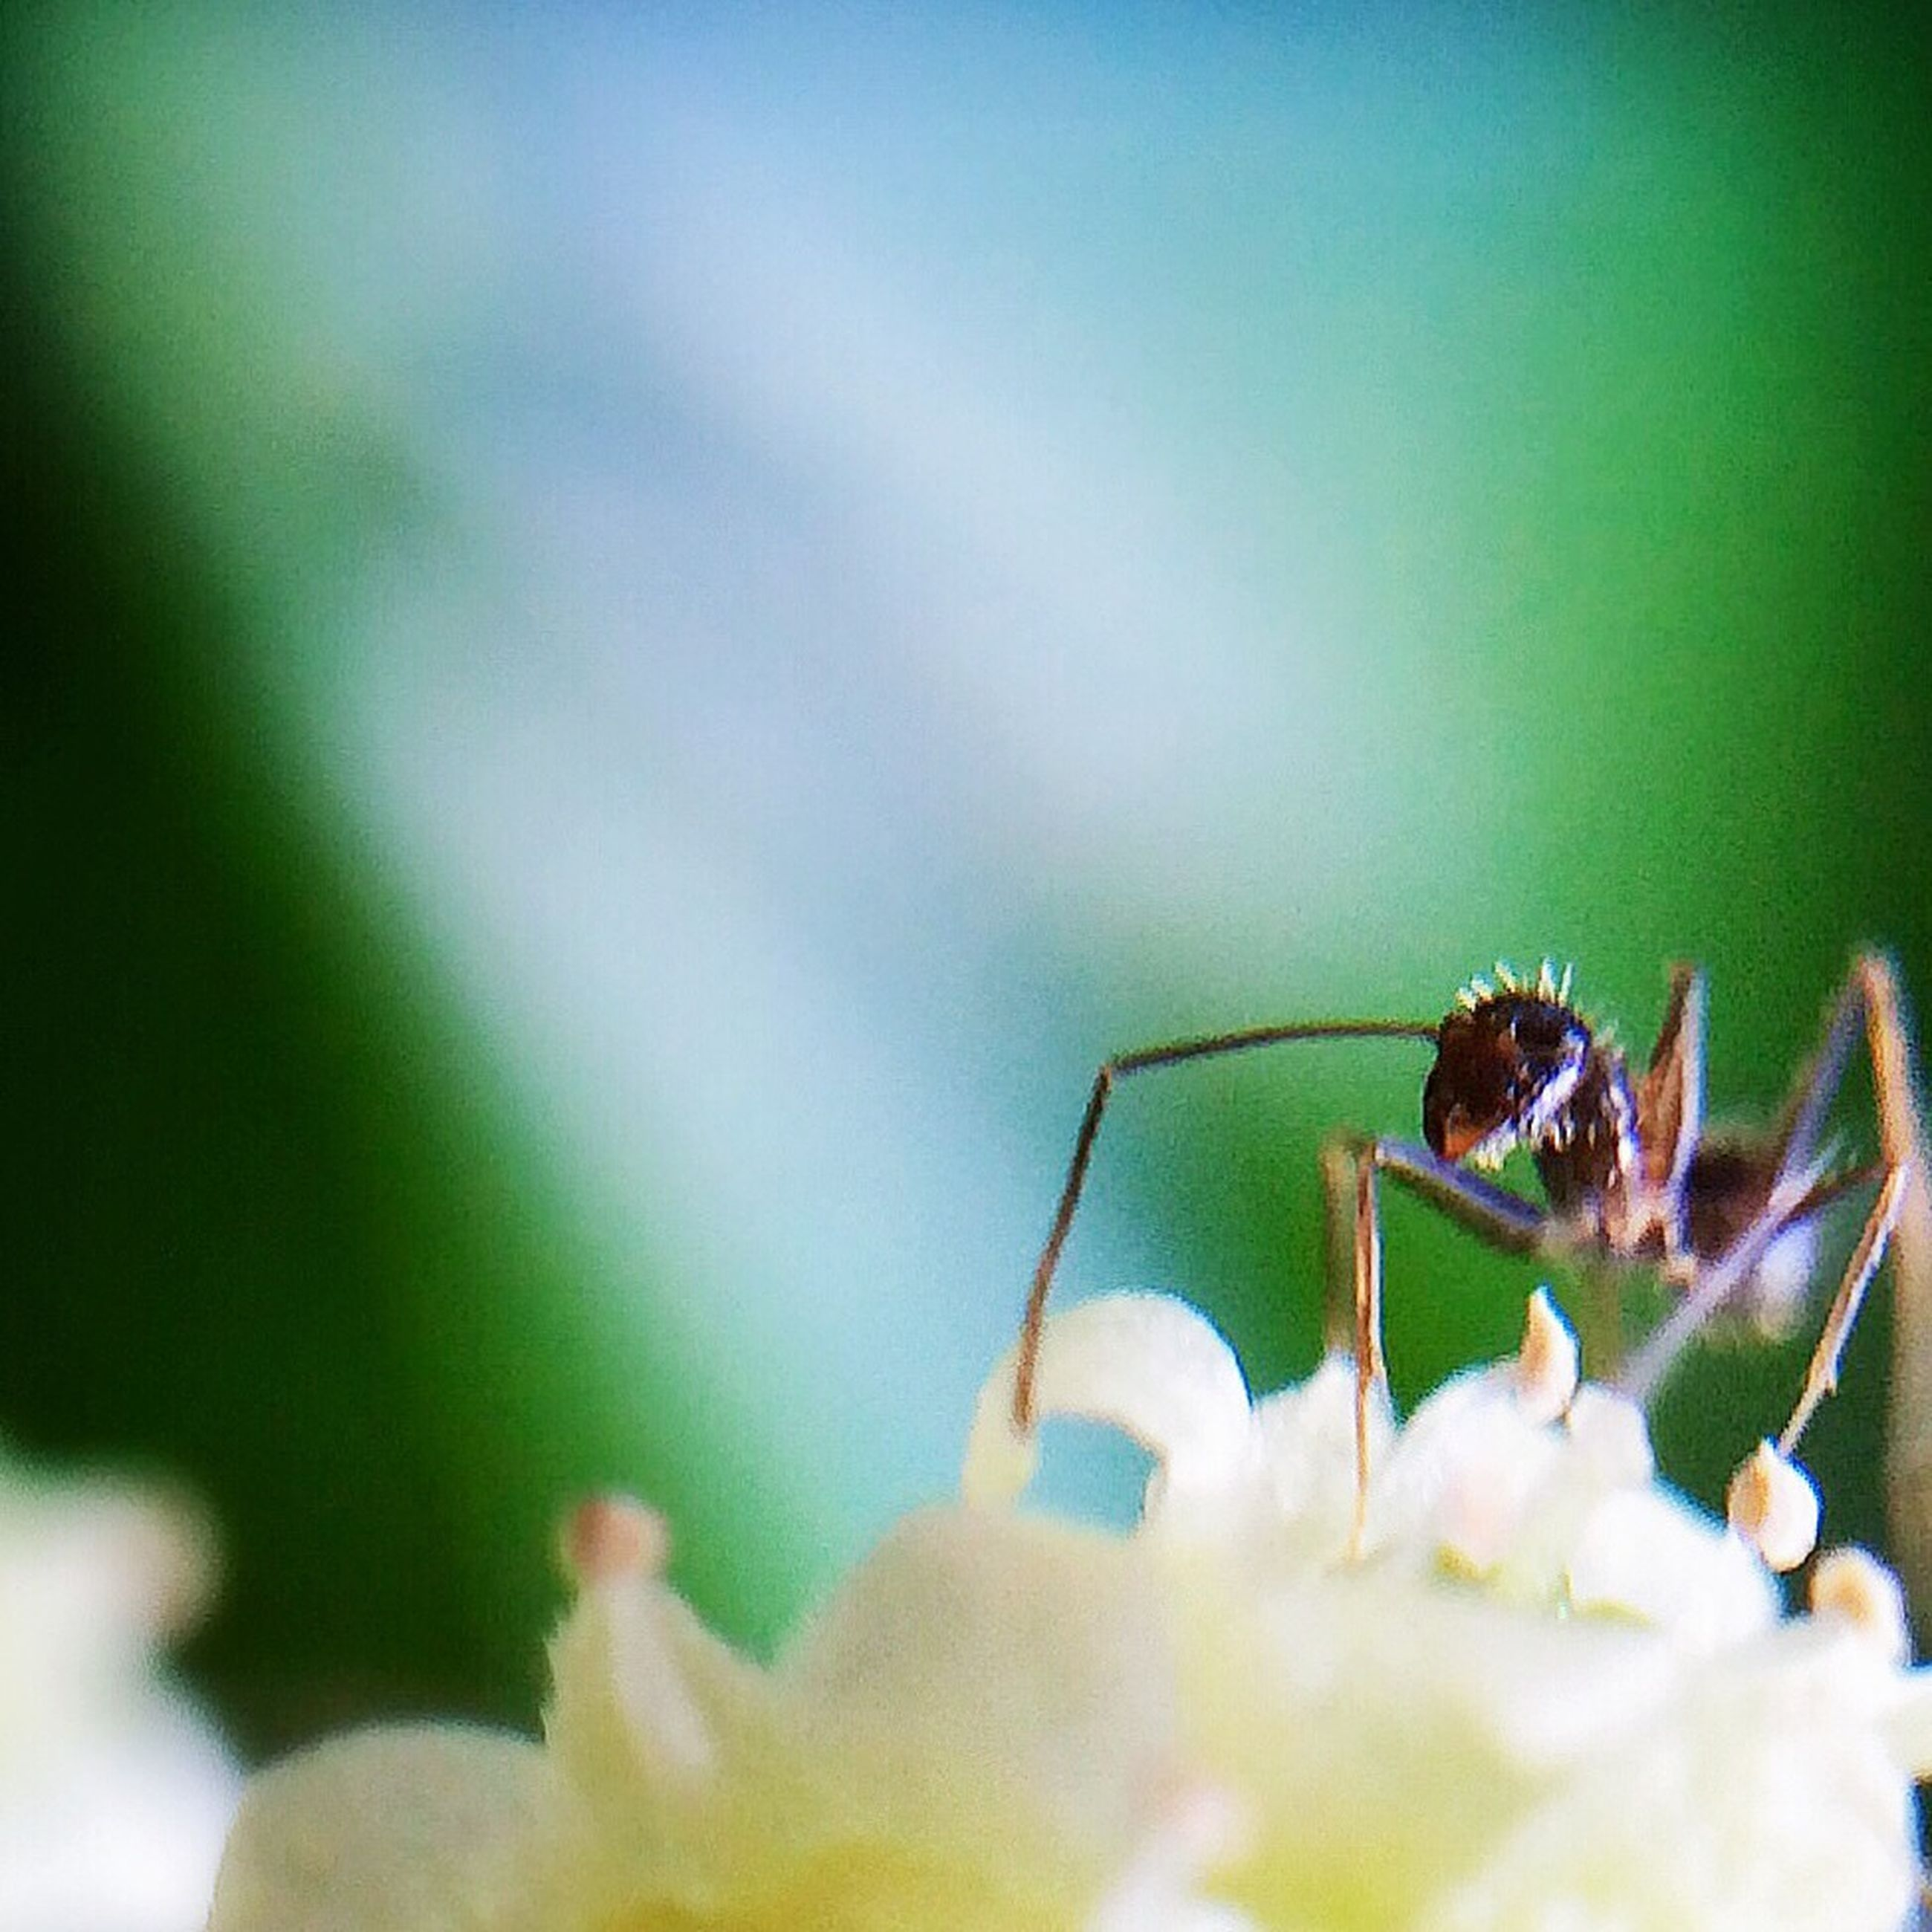 insect, animal themes, one animal, animals in the wild, wildlife, flower, close-up, selective focus, fragility, plant, nature, focus on foreground, spider, stem, growth, beauty in nature, petal, day, outdoors, no people